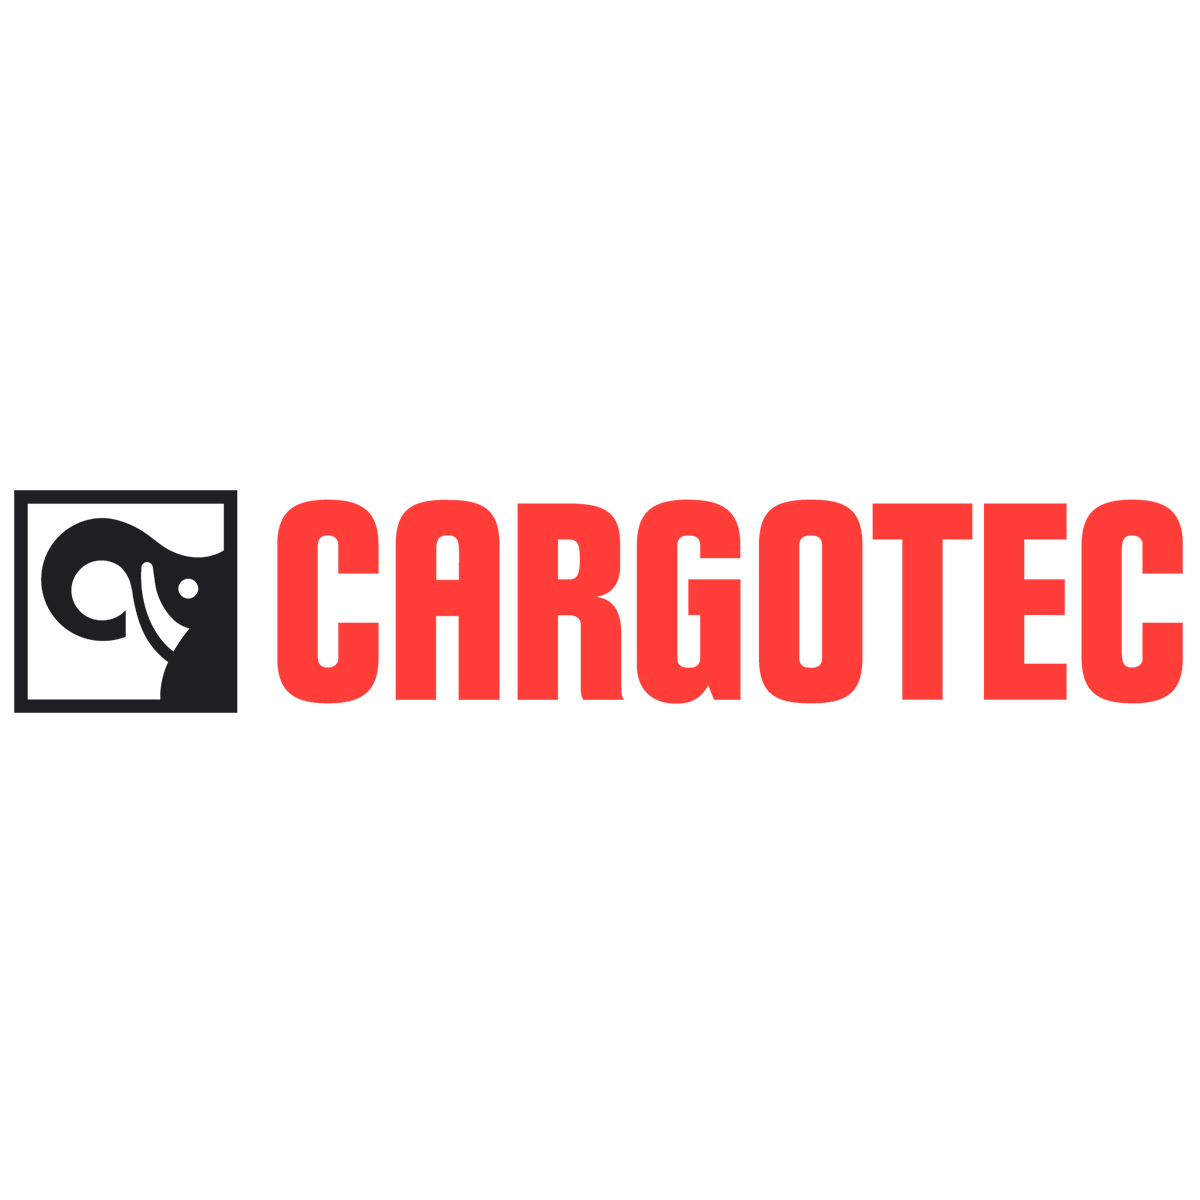 Cargotec: Strong growth in orders received During First Half of 2018